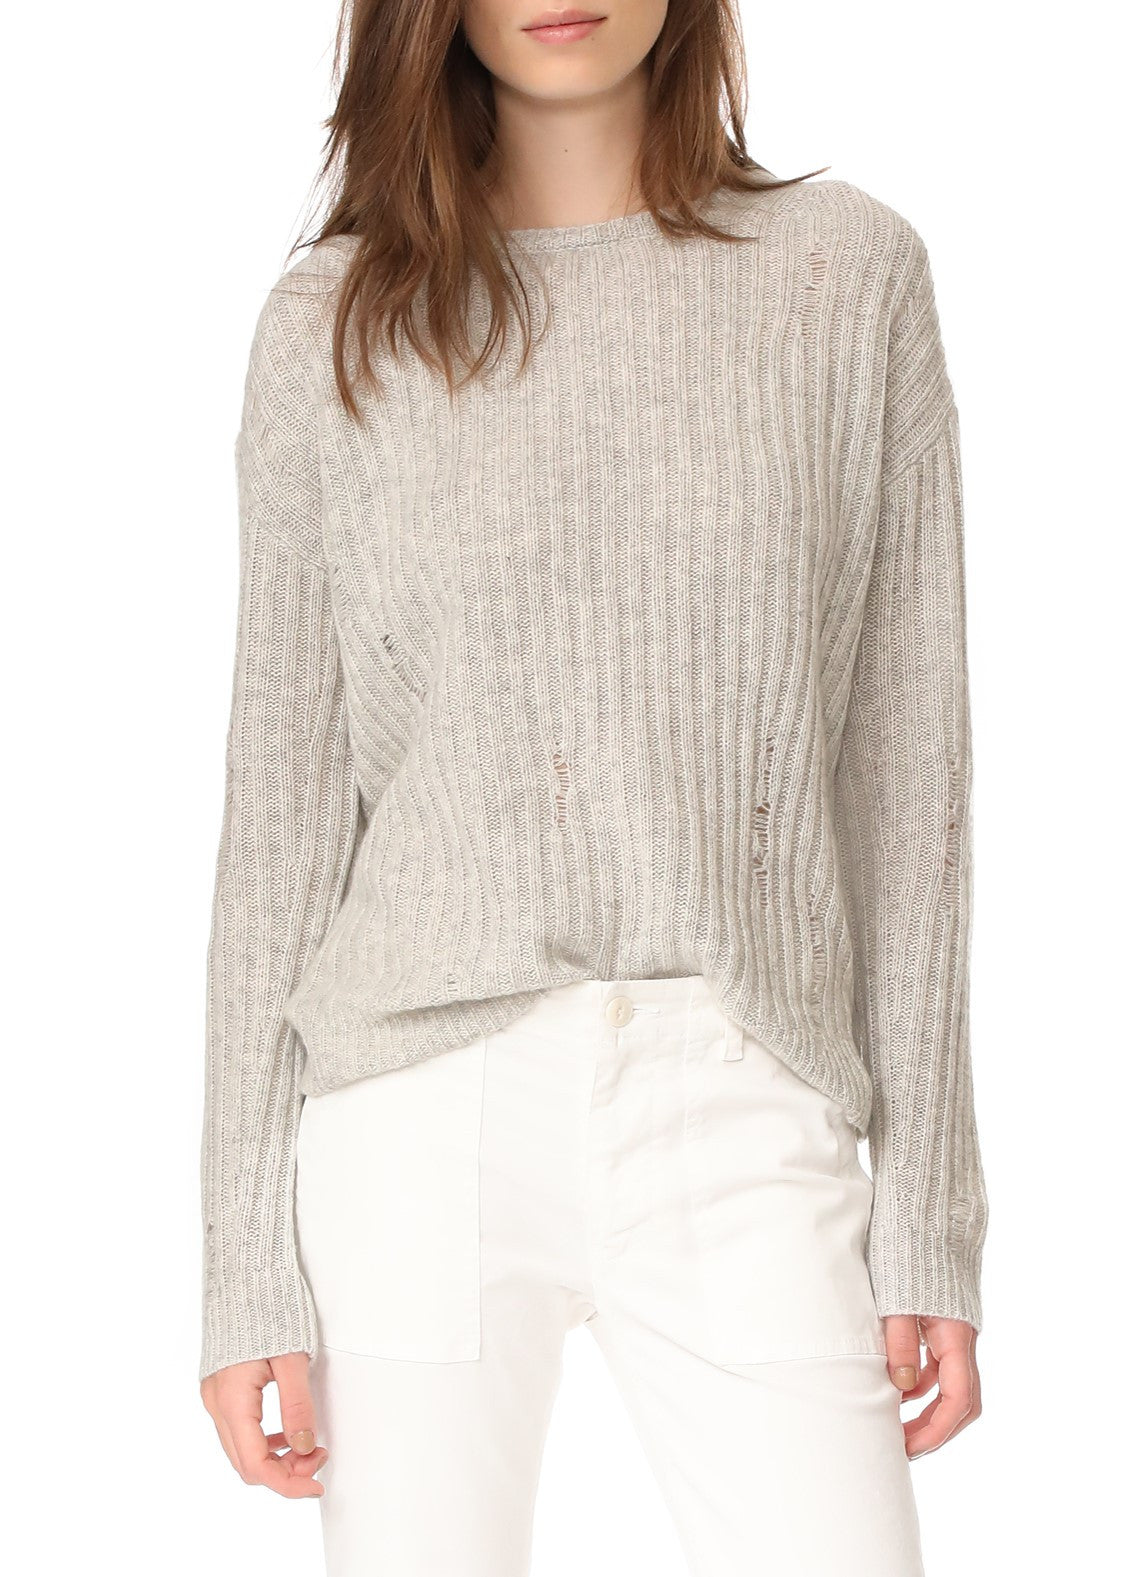 Nili Lotan baxter sweater light grey